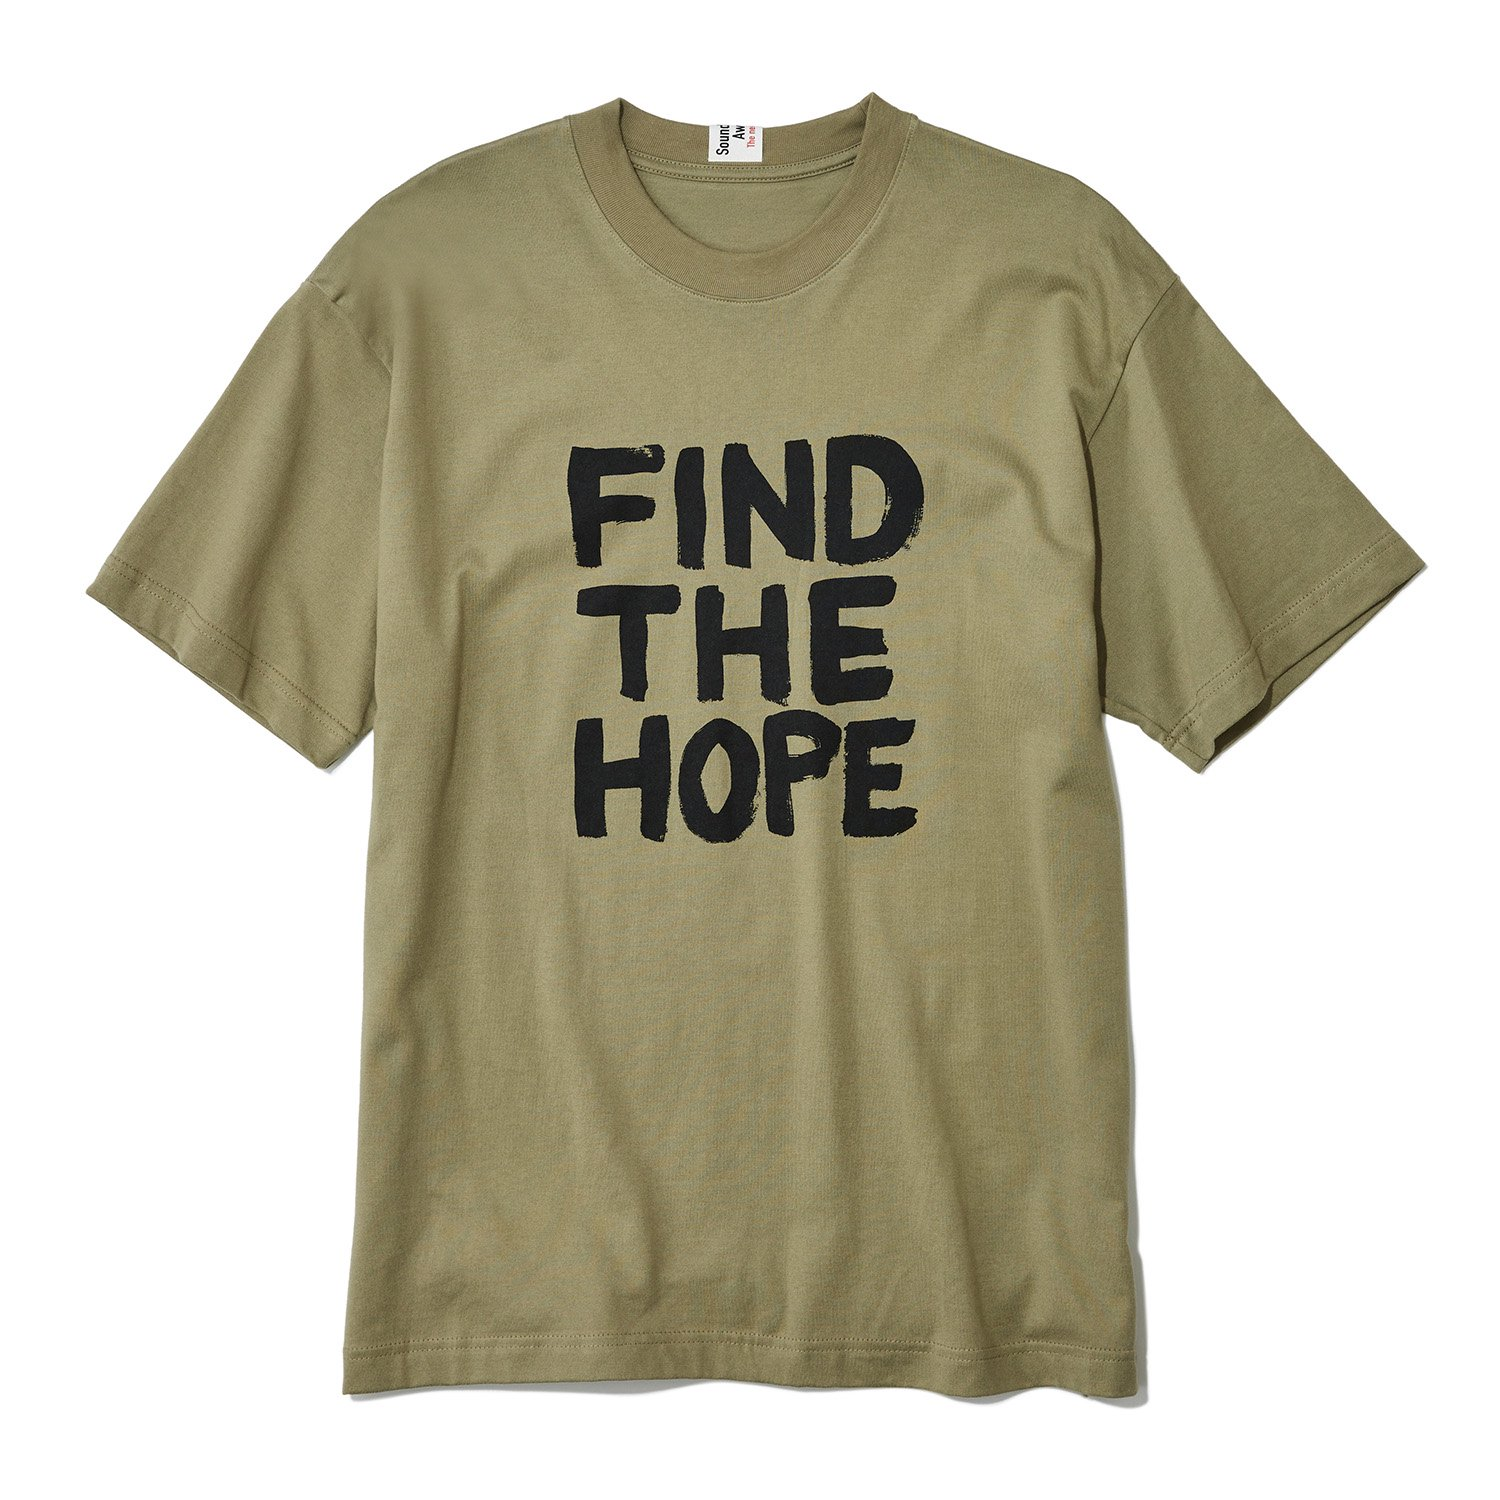 <img class='new_mark_img1' src='https://img.shop-pro.jp/img/new/icons8.gif' style='border:none;display:inline;margin:0px;padding:0px;width:auto;' />SOUNDS AWESOME / FIND THE HOPE T-shirt